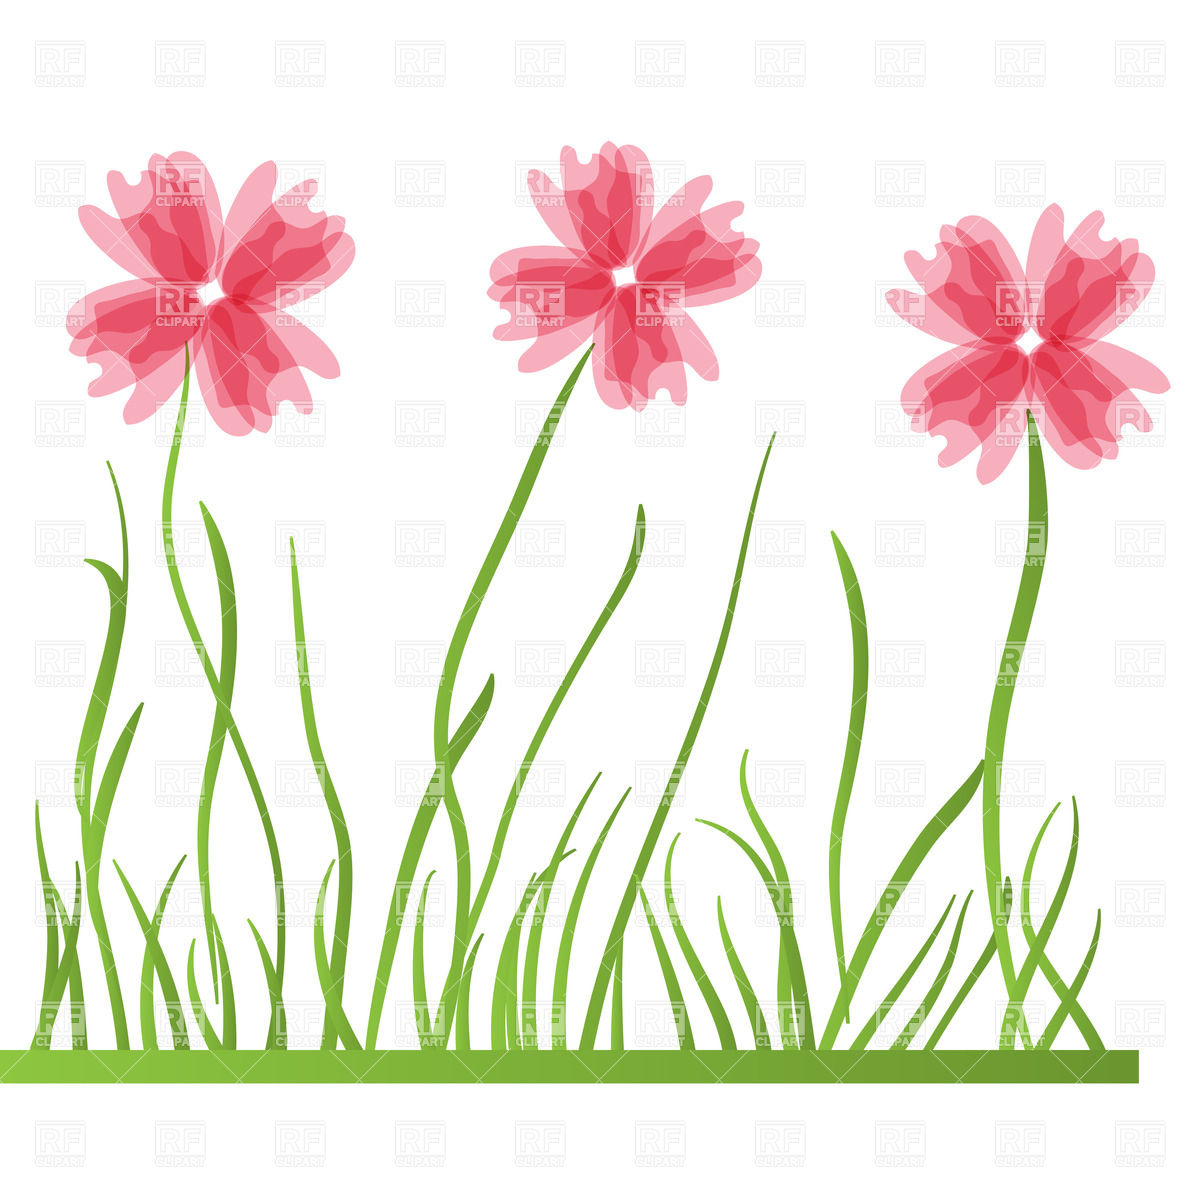 Stylized wildflowers on pink Vector Image #23851.